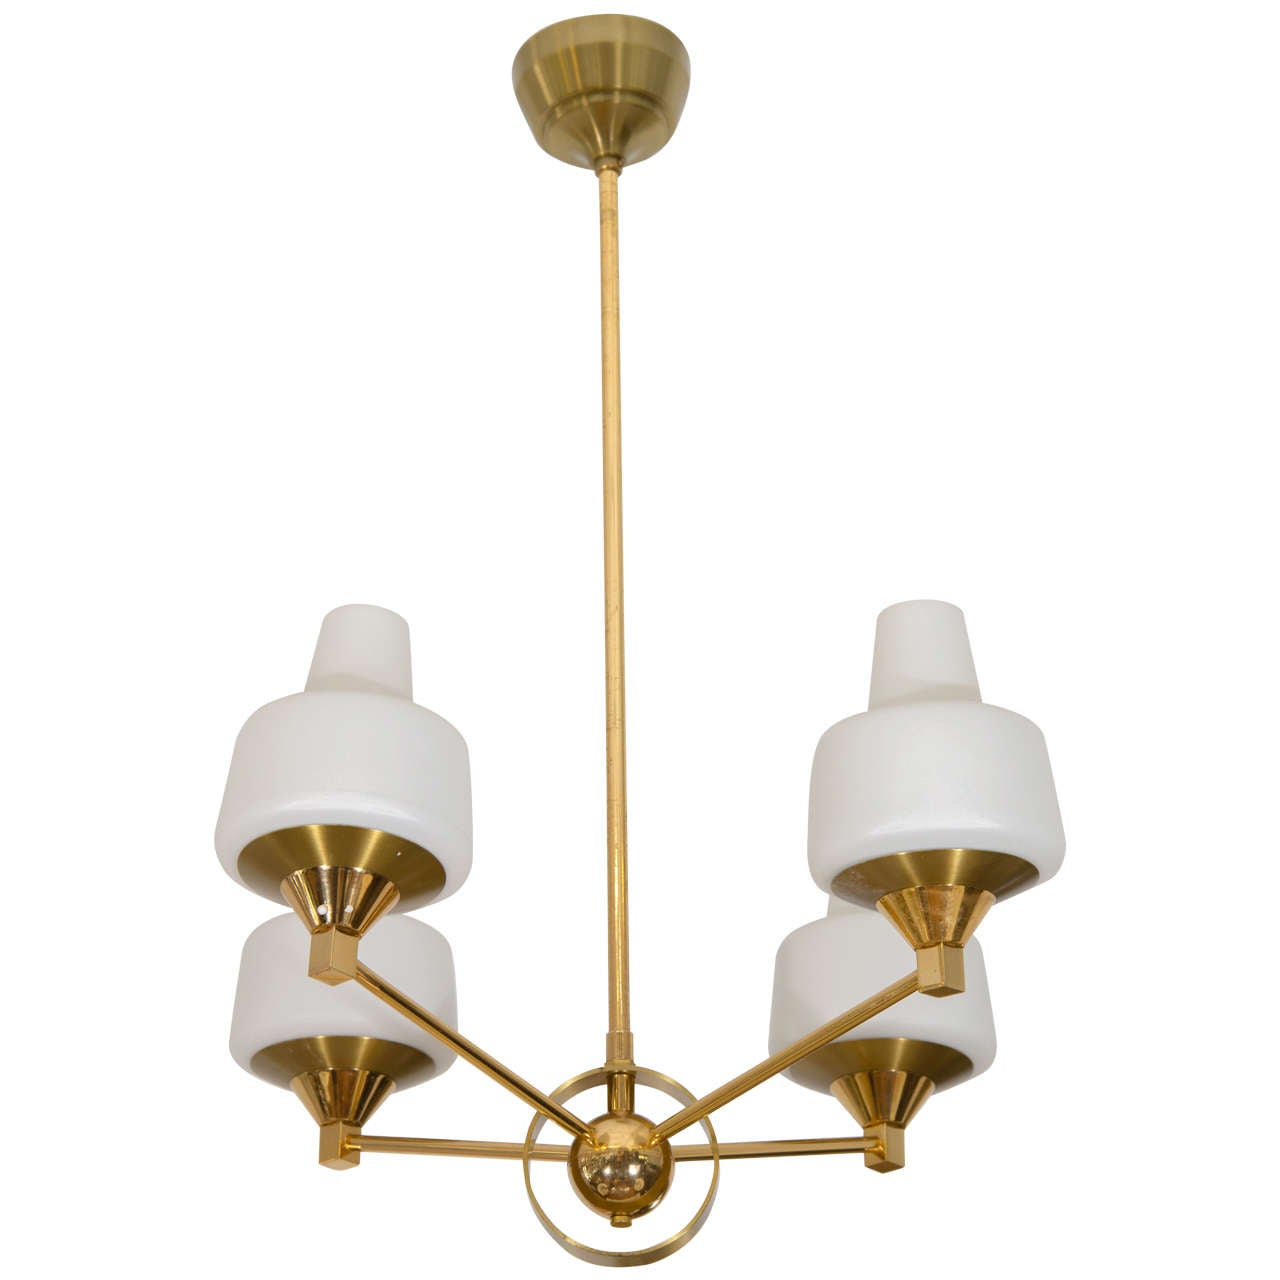 Midcentury Brass and Frosted Glass, Four-Arm Pendant Light